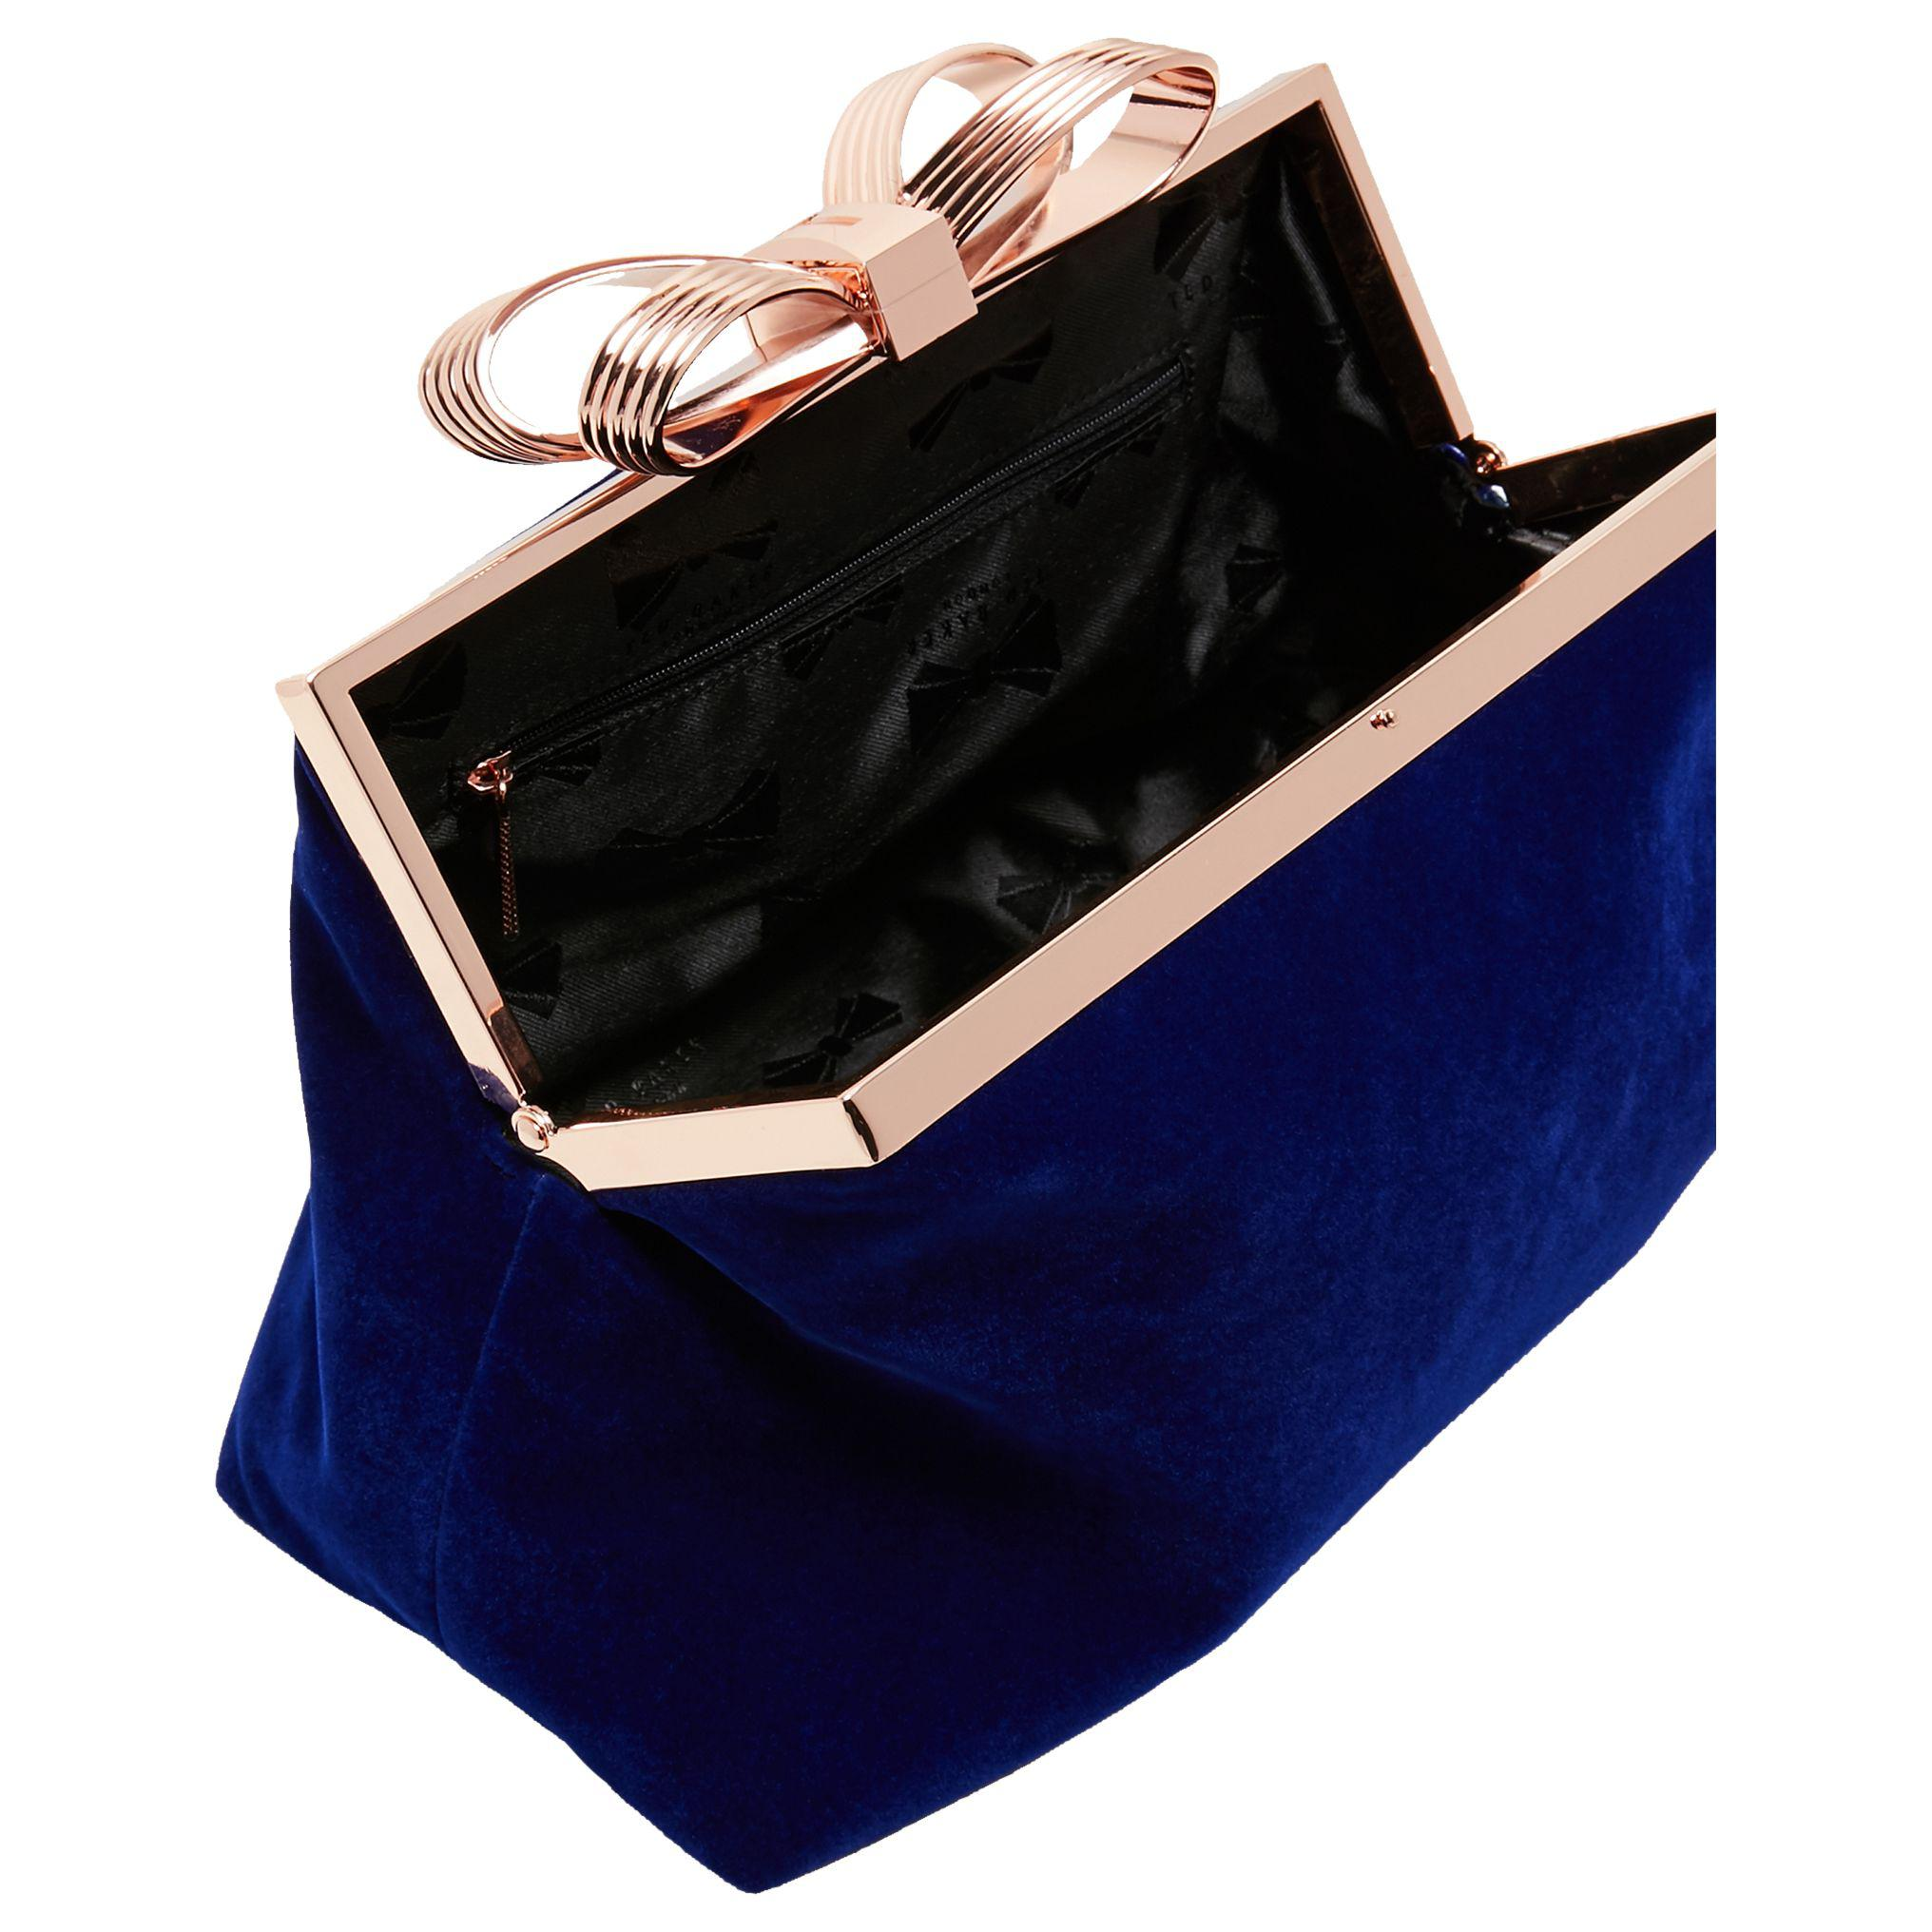 7514332466 Blue Ted Baker Purse John Lewis - Best Purse Image Ccdbb.Org